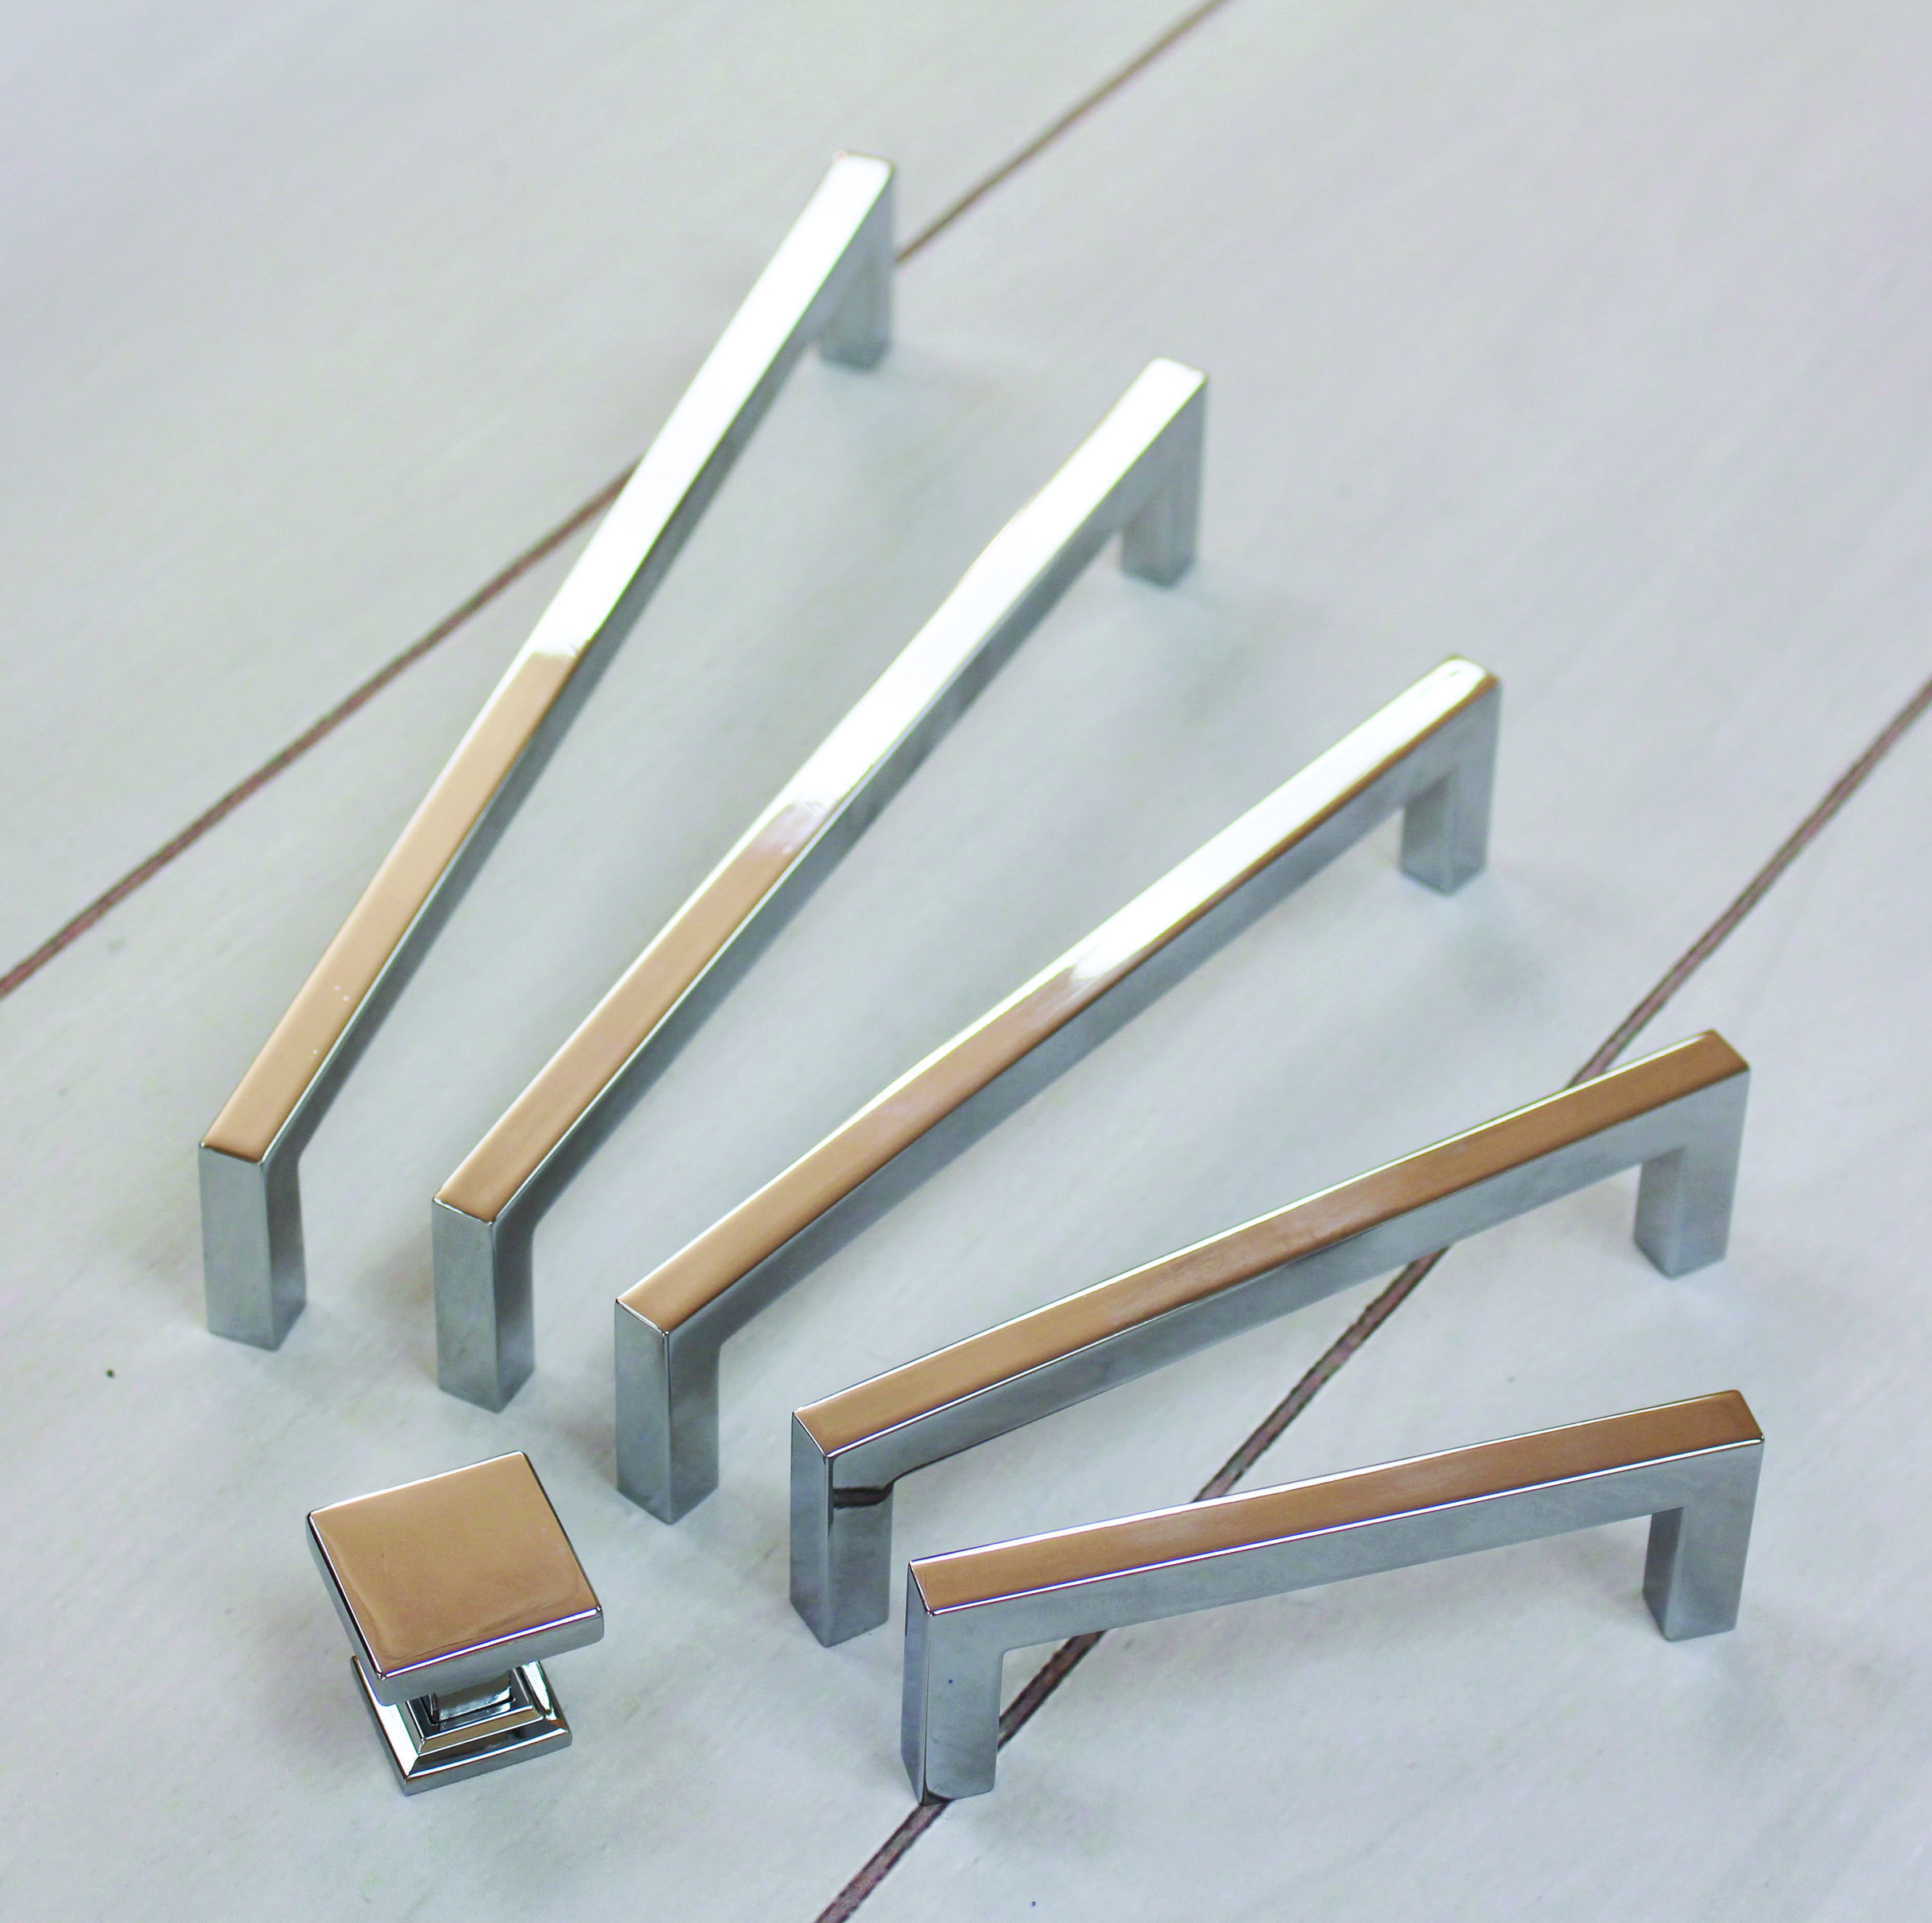 Contemporary Square Cabinet Pull | Cabinet hardware, Hardware and ...